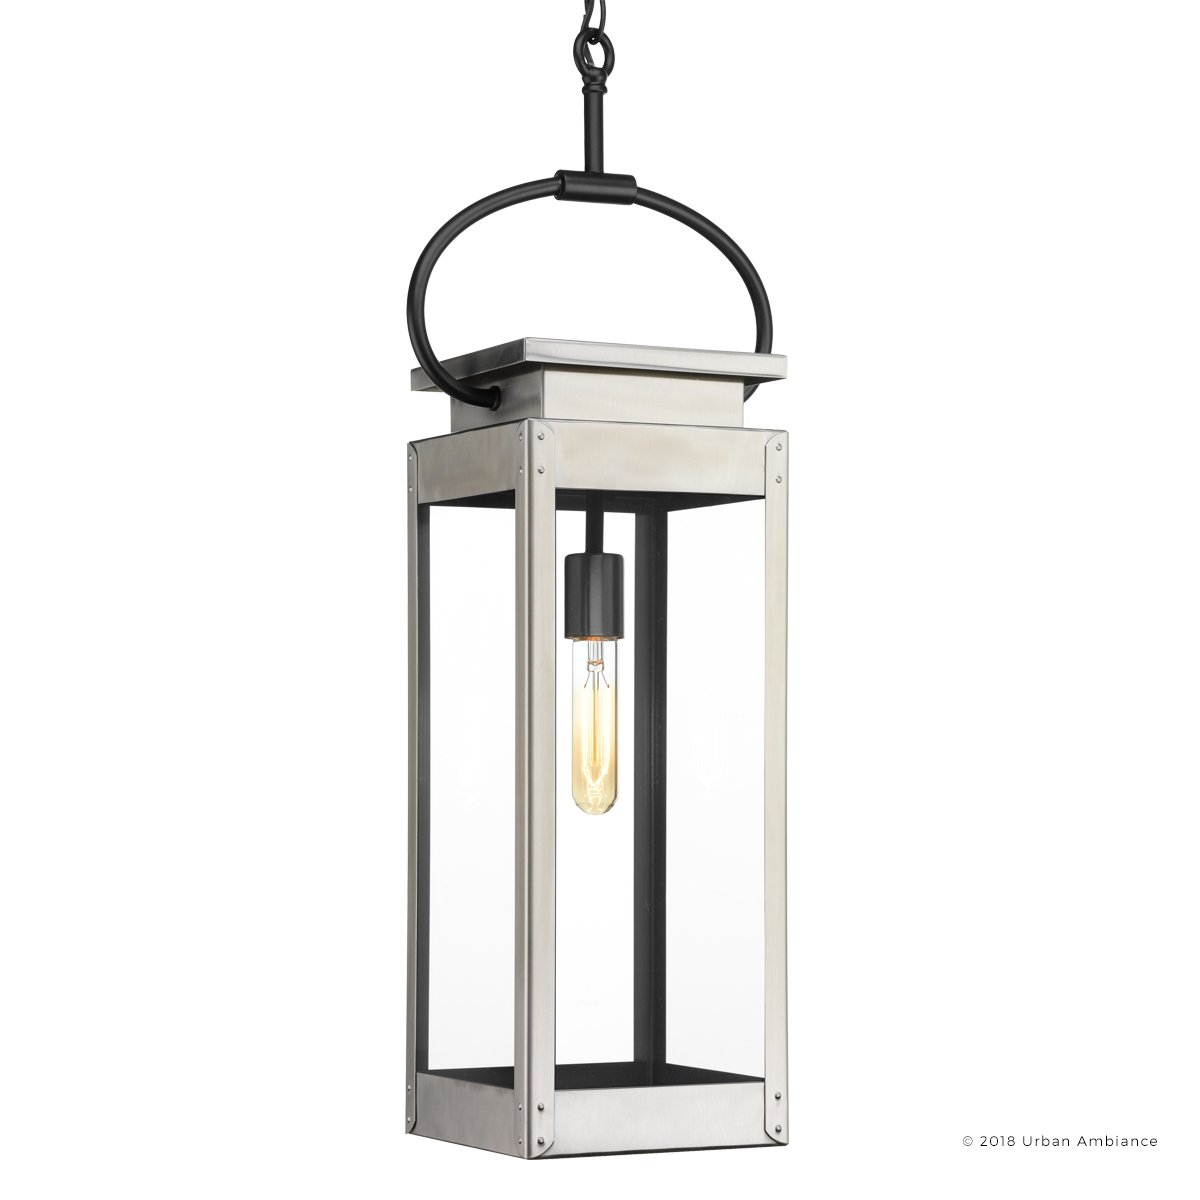 Luxury Modern Farmhouse Outdoor Pendant Light, Large Size: 27.375''H x 7''W, with Nautical Style Elements, Stainless Steel Finish, UHP1134 from The Darwin Collection by Urban Ambiance